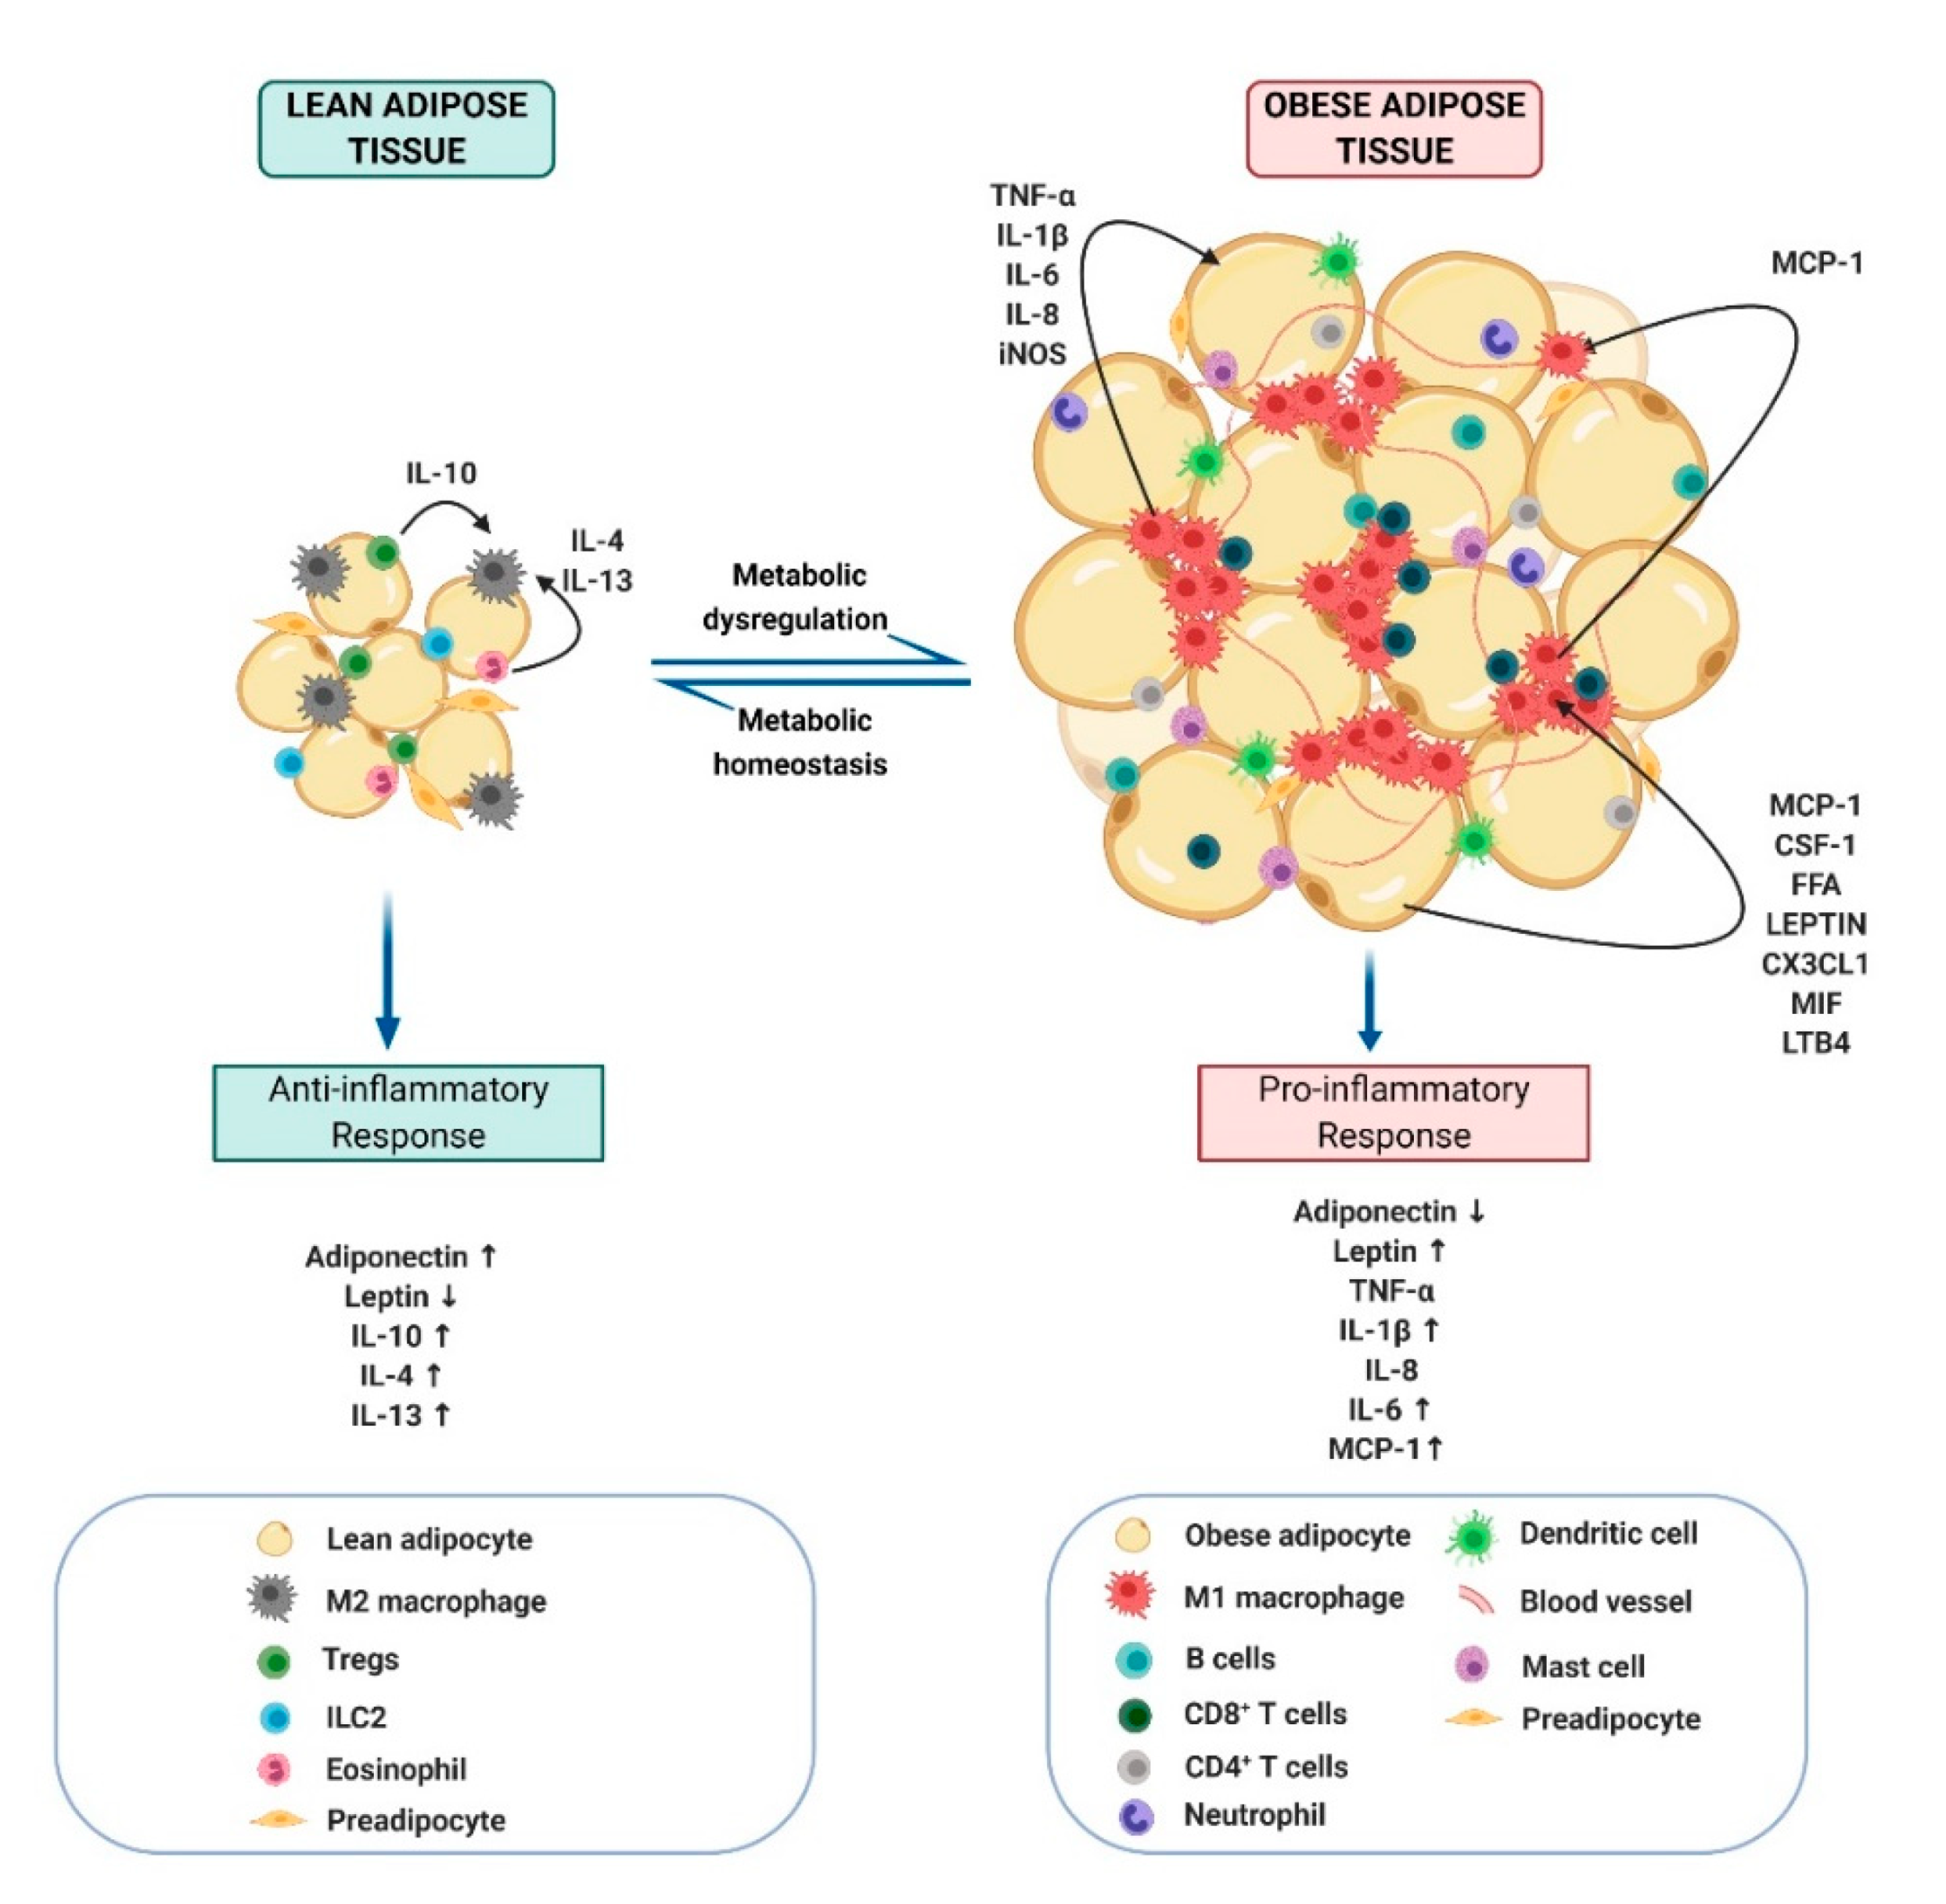 Molecules Free Full Text The Targeted Impact Of Flavones On Obesity Induced Inflammation And The Potential Synergistic Role In Cancer And The Gut Microbiota Html